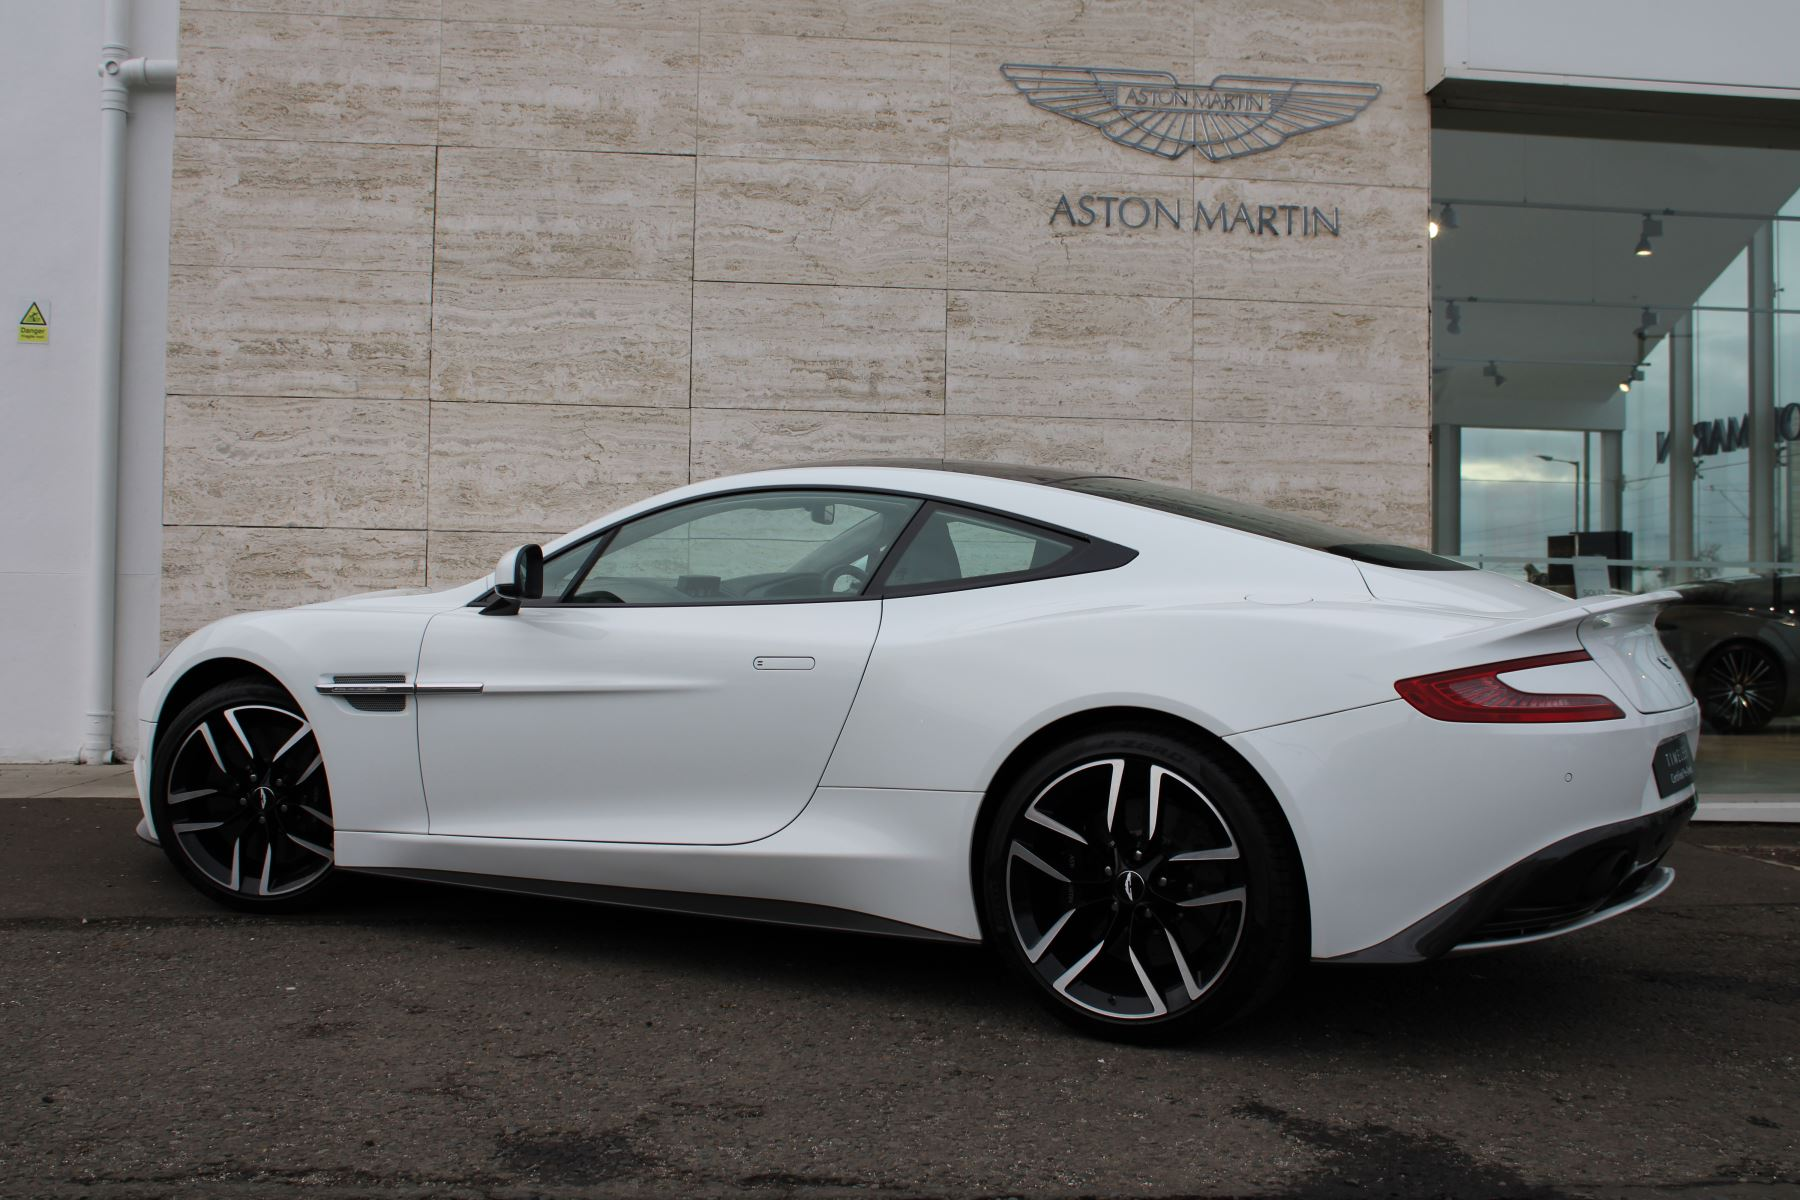 Aston Martin Vanquish V12 [568] 2+2 2dr Touchtronic image 20